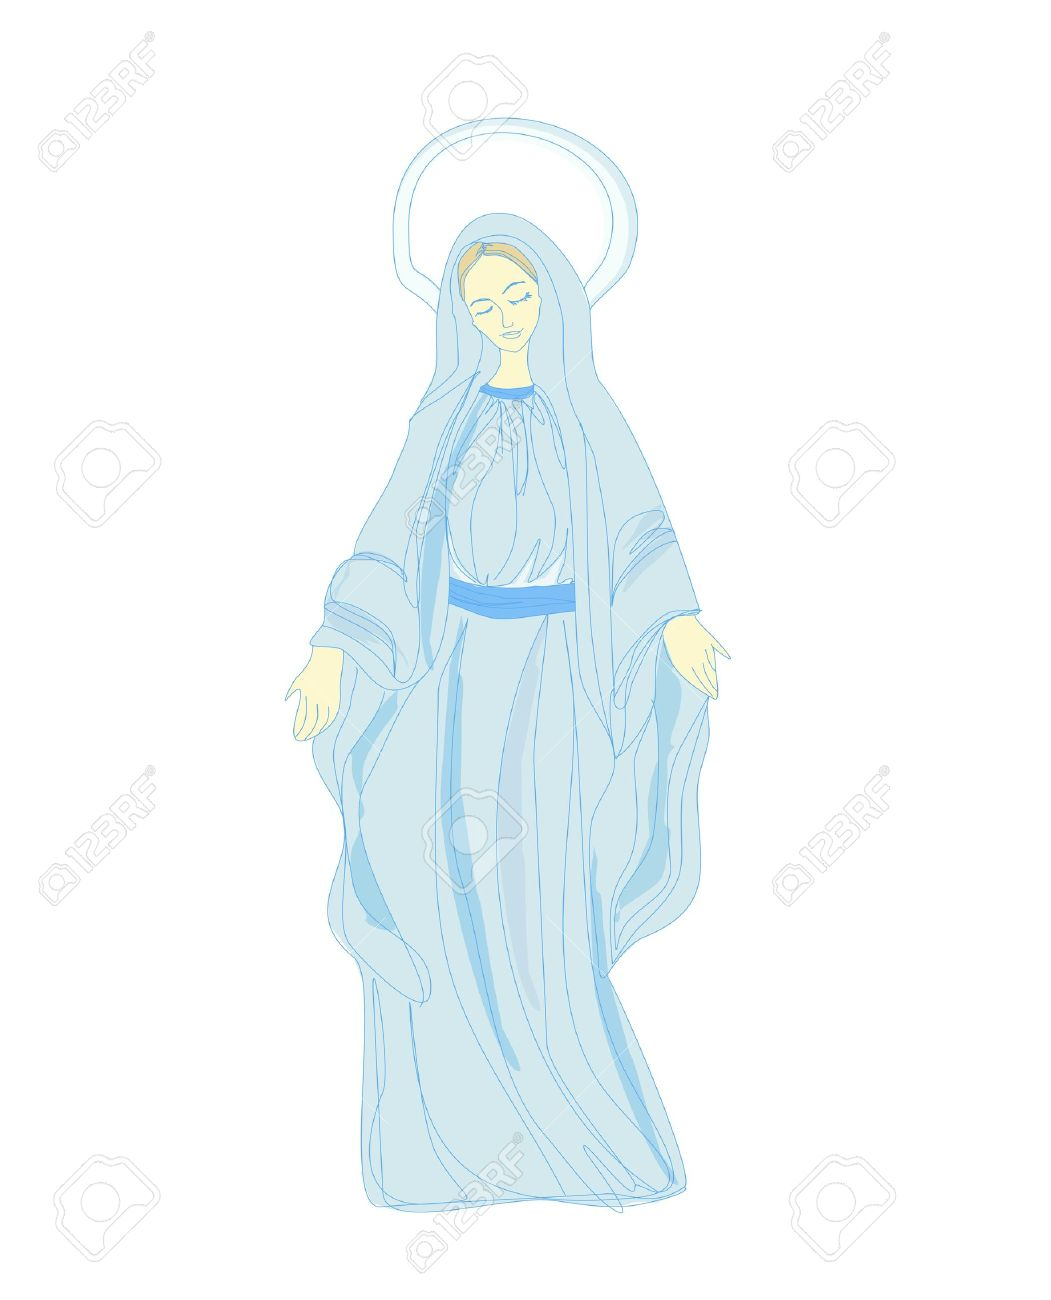 Blessed Virgin Mary Stock Vector - 15734580